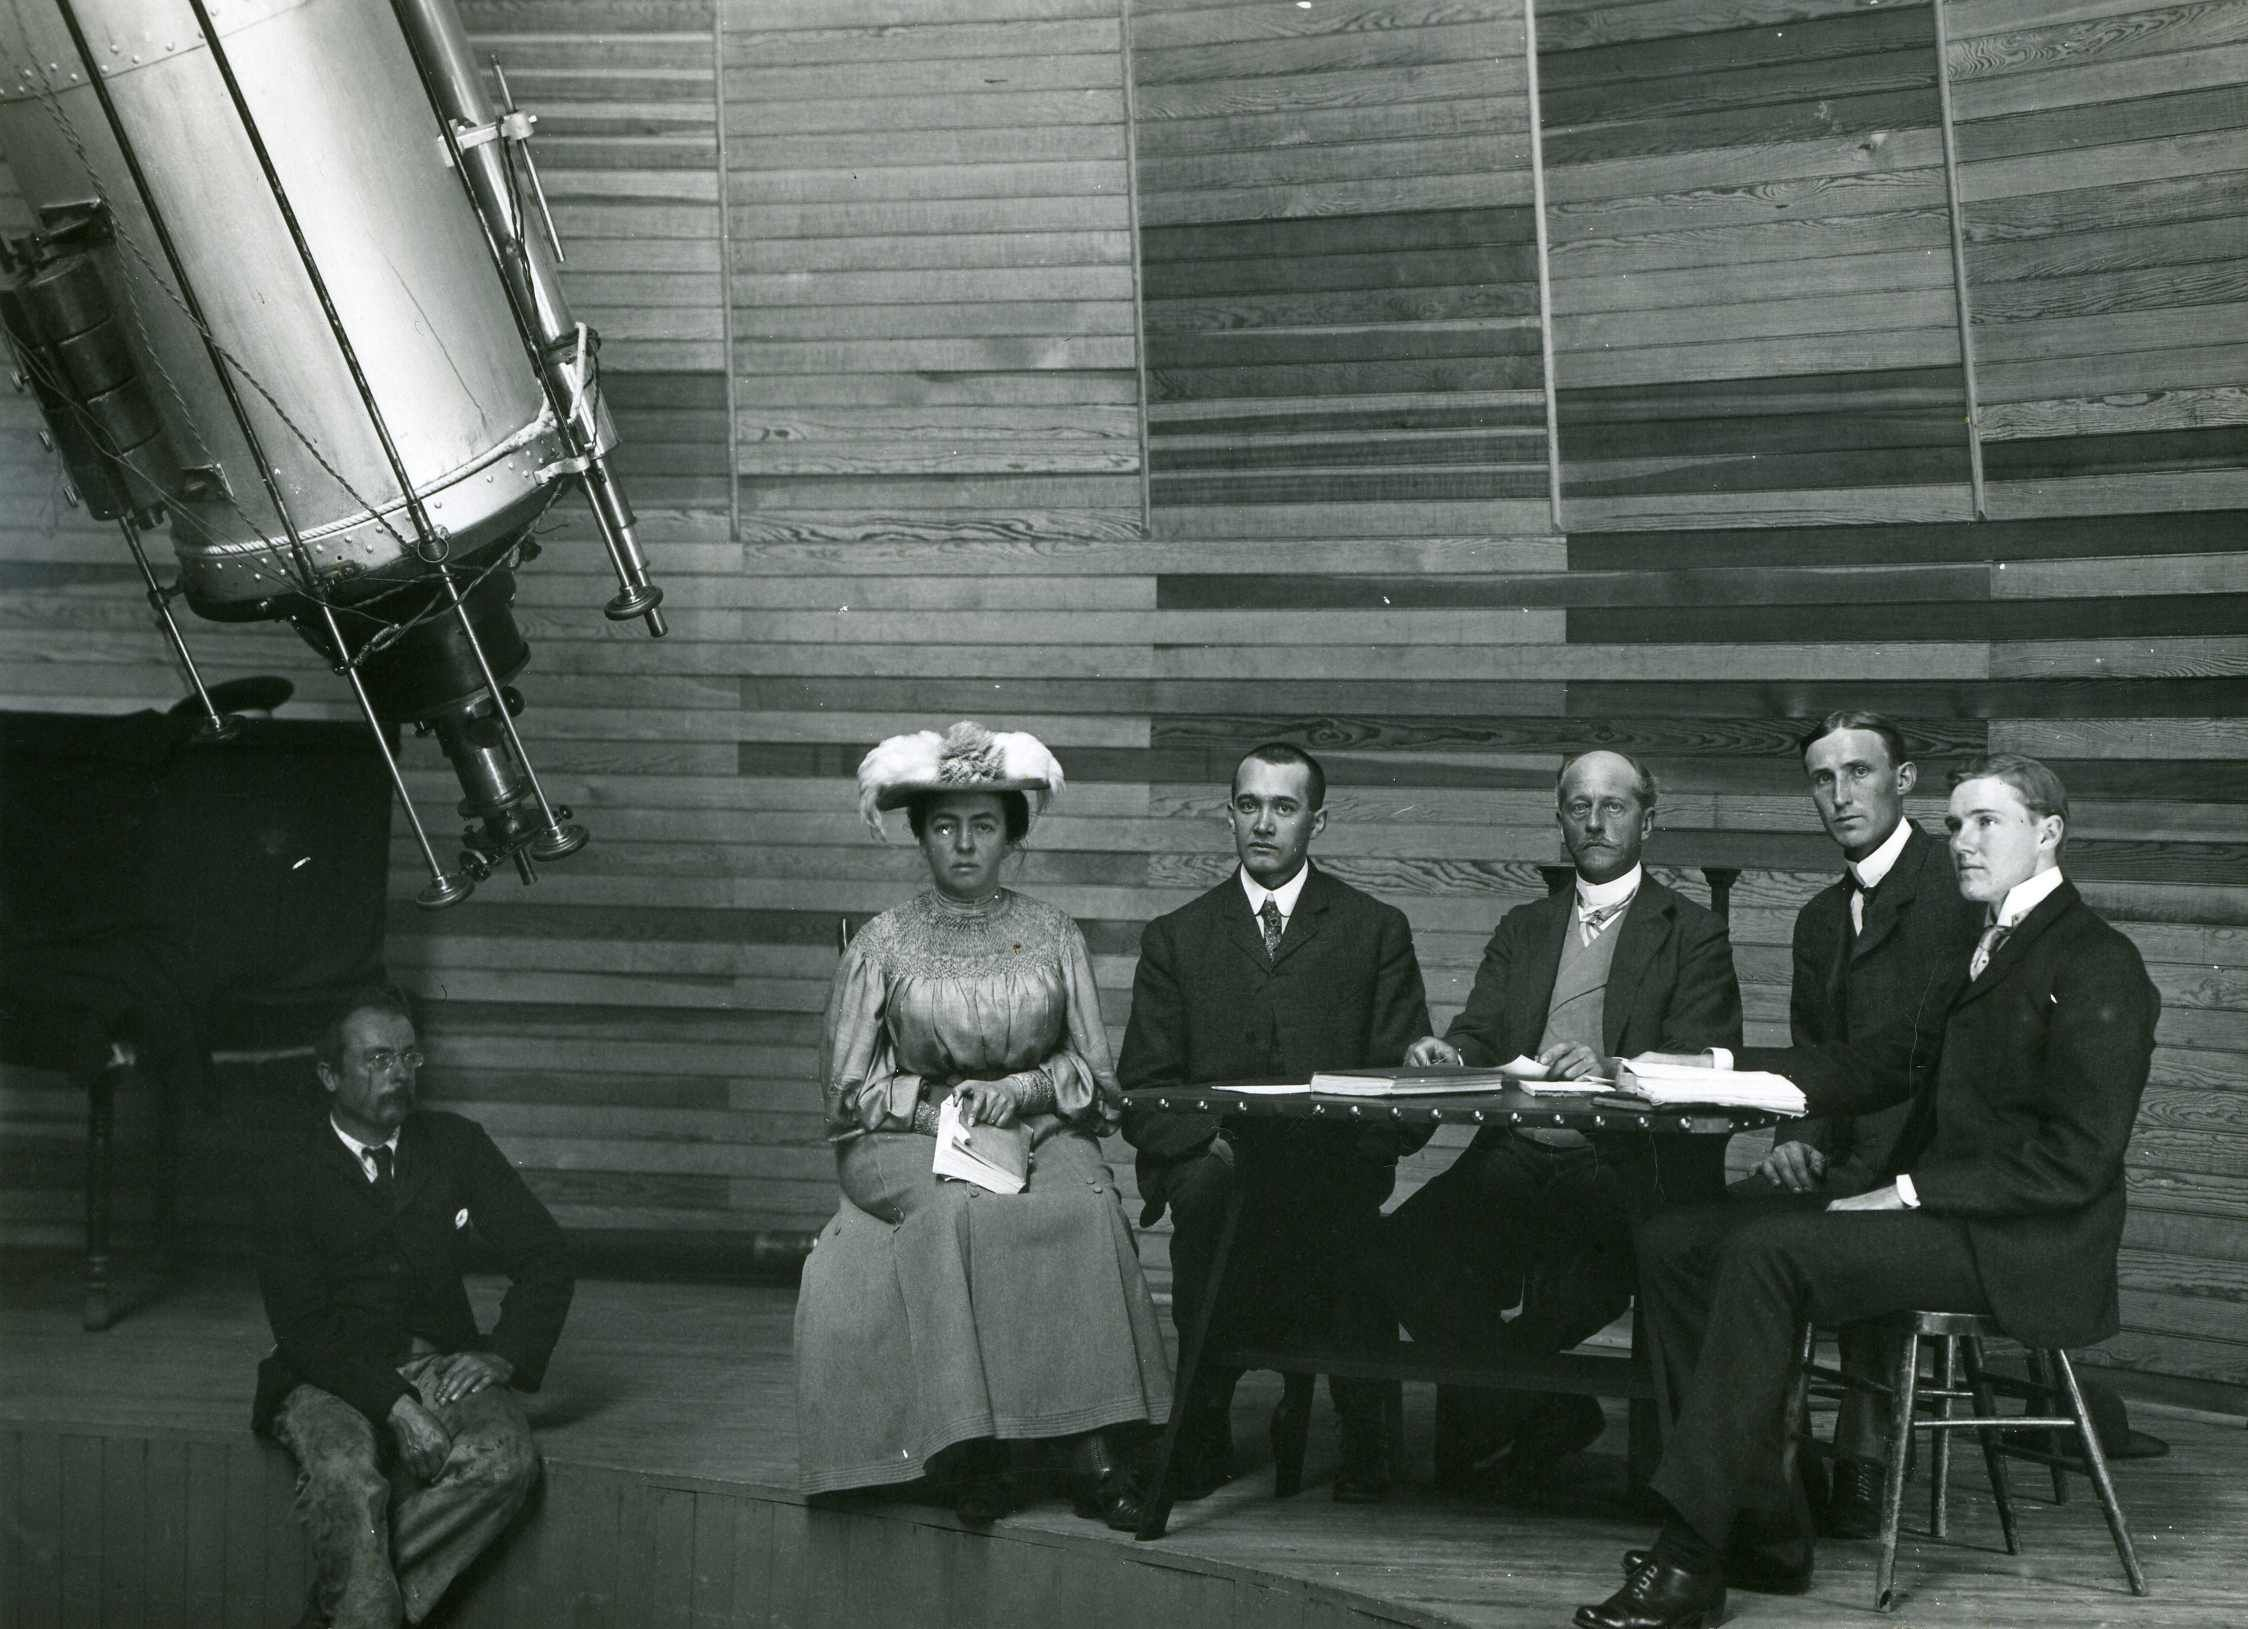 Lowell staff seated by the Clark Telescope in 1905. Left to right: Harry Hussey, Wrexie Leonard, V.M. Slipher, Percival Lowell, Carl Lampland, and John C. Duncan.